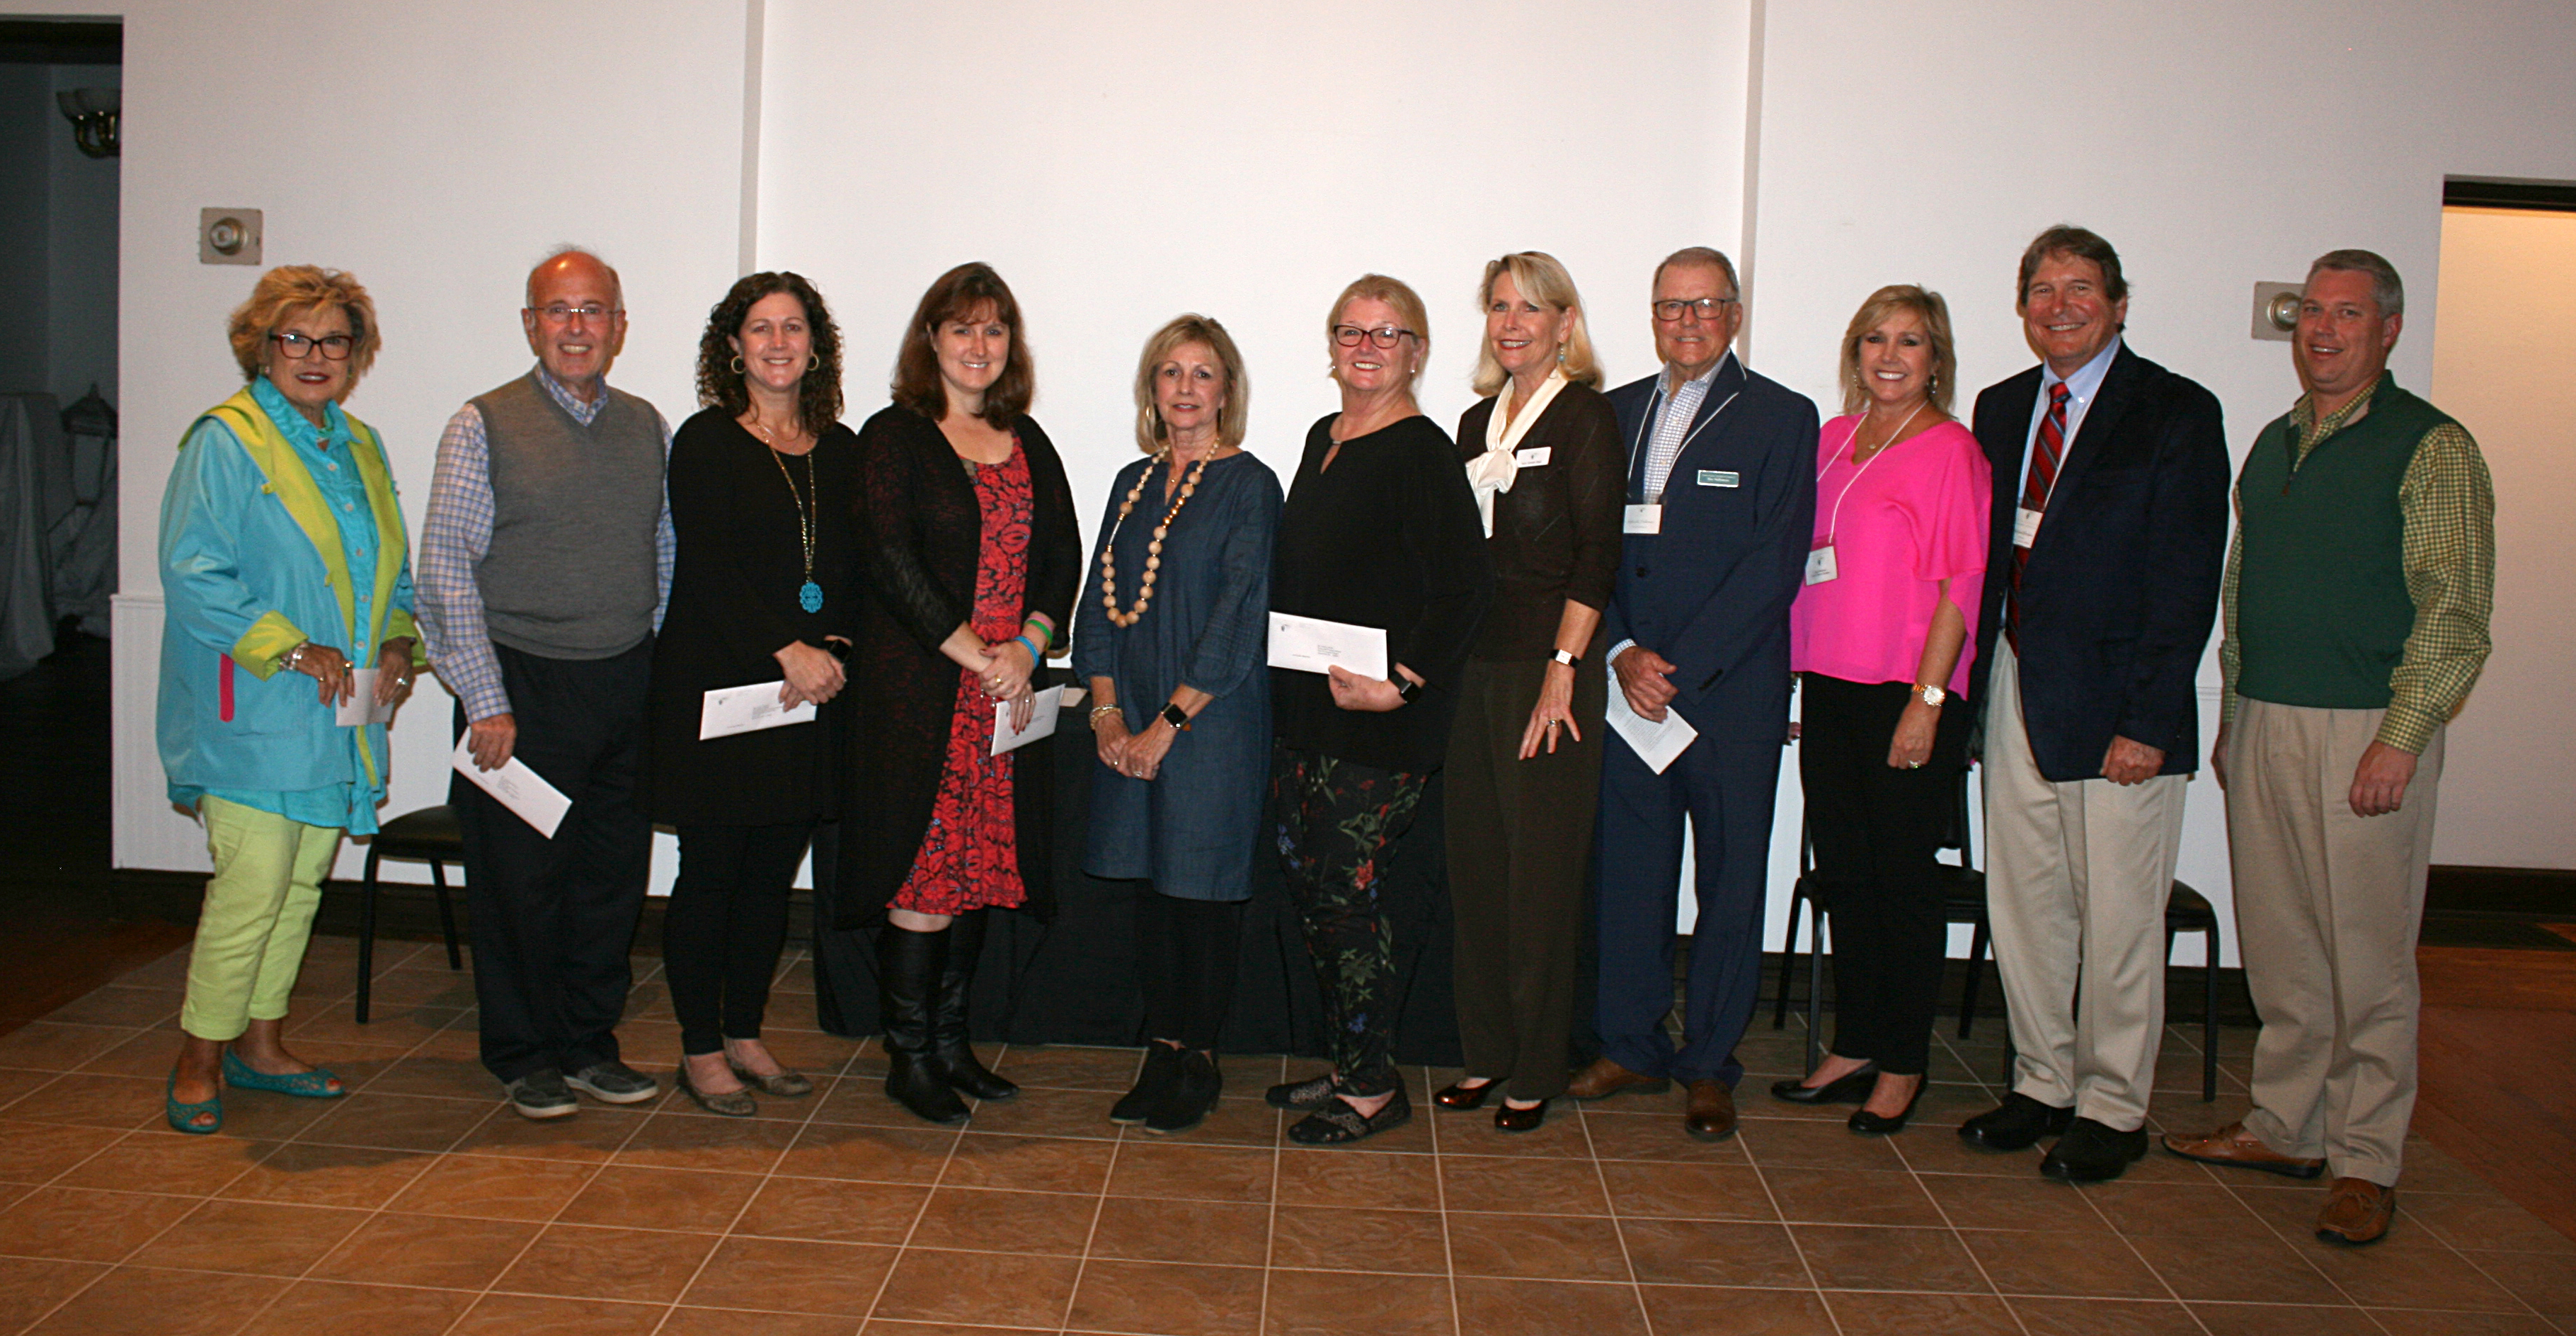 Pictured awarding local grants are (left to right): Dianne Andrews, Interfaith Volunteers; George Mewborn, Greene County Museum, Holly Aycock, Special Olympics North Carolina; Jennifer Smith, Girl Scouts of the N.C. Coastal Plain; Kathy Dail, Greene County Schools Health Services; Pat Adams, Greene County Board of Education; Kim Ball, NCCF; Ray Holloman, GCCF vice president; Susan Beaman, GCCF grants committee chairwoman; Michael Rhodes, GCCF president Jody Tyson, GCCF board member. Photo courtesy of the Standard Laconic.